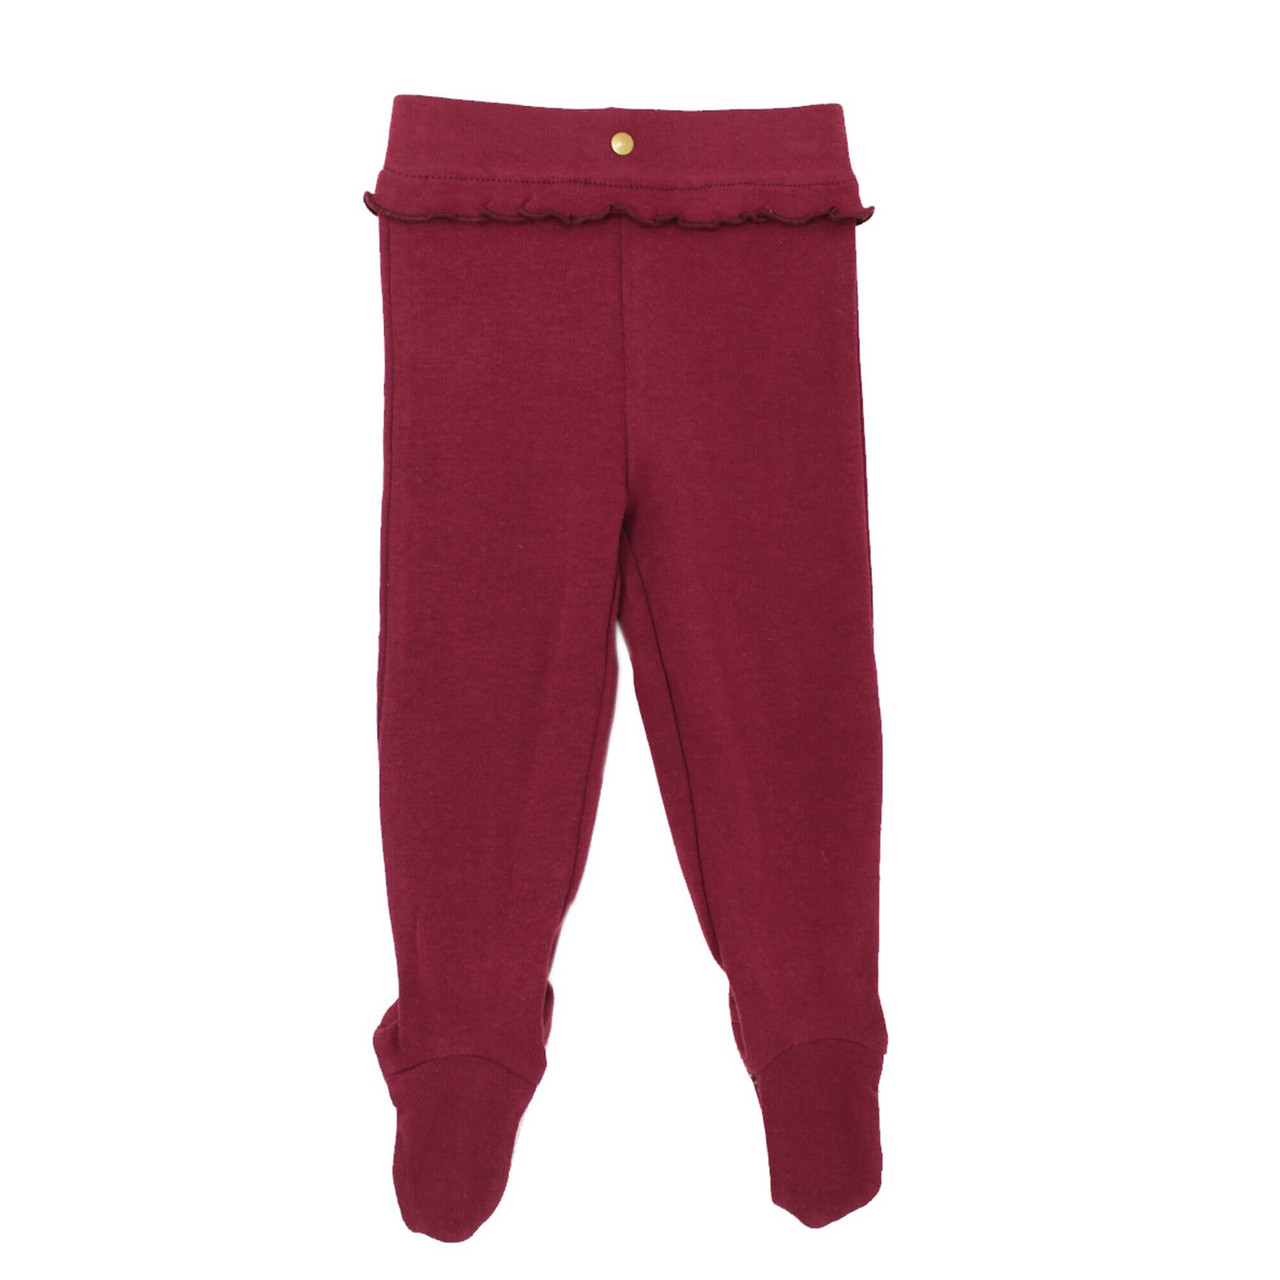 Organic Ruffle Footed Legging in Cranberry (Up to 6-9m), Flat